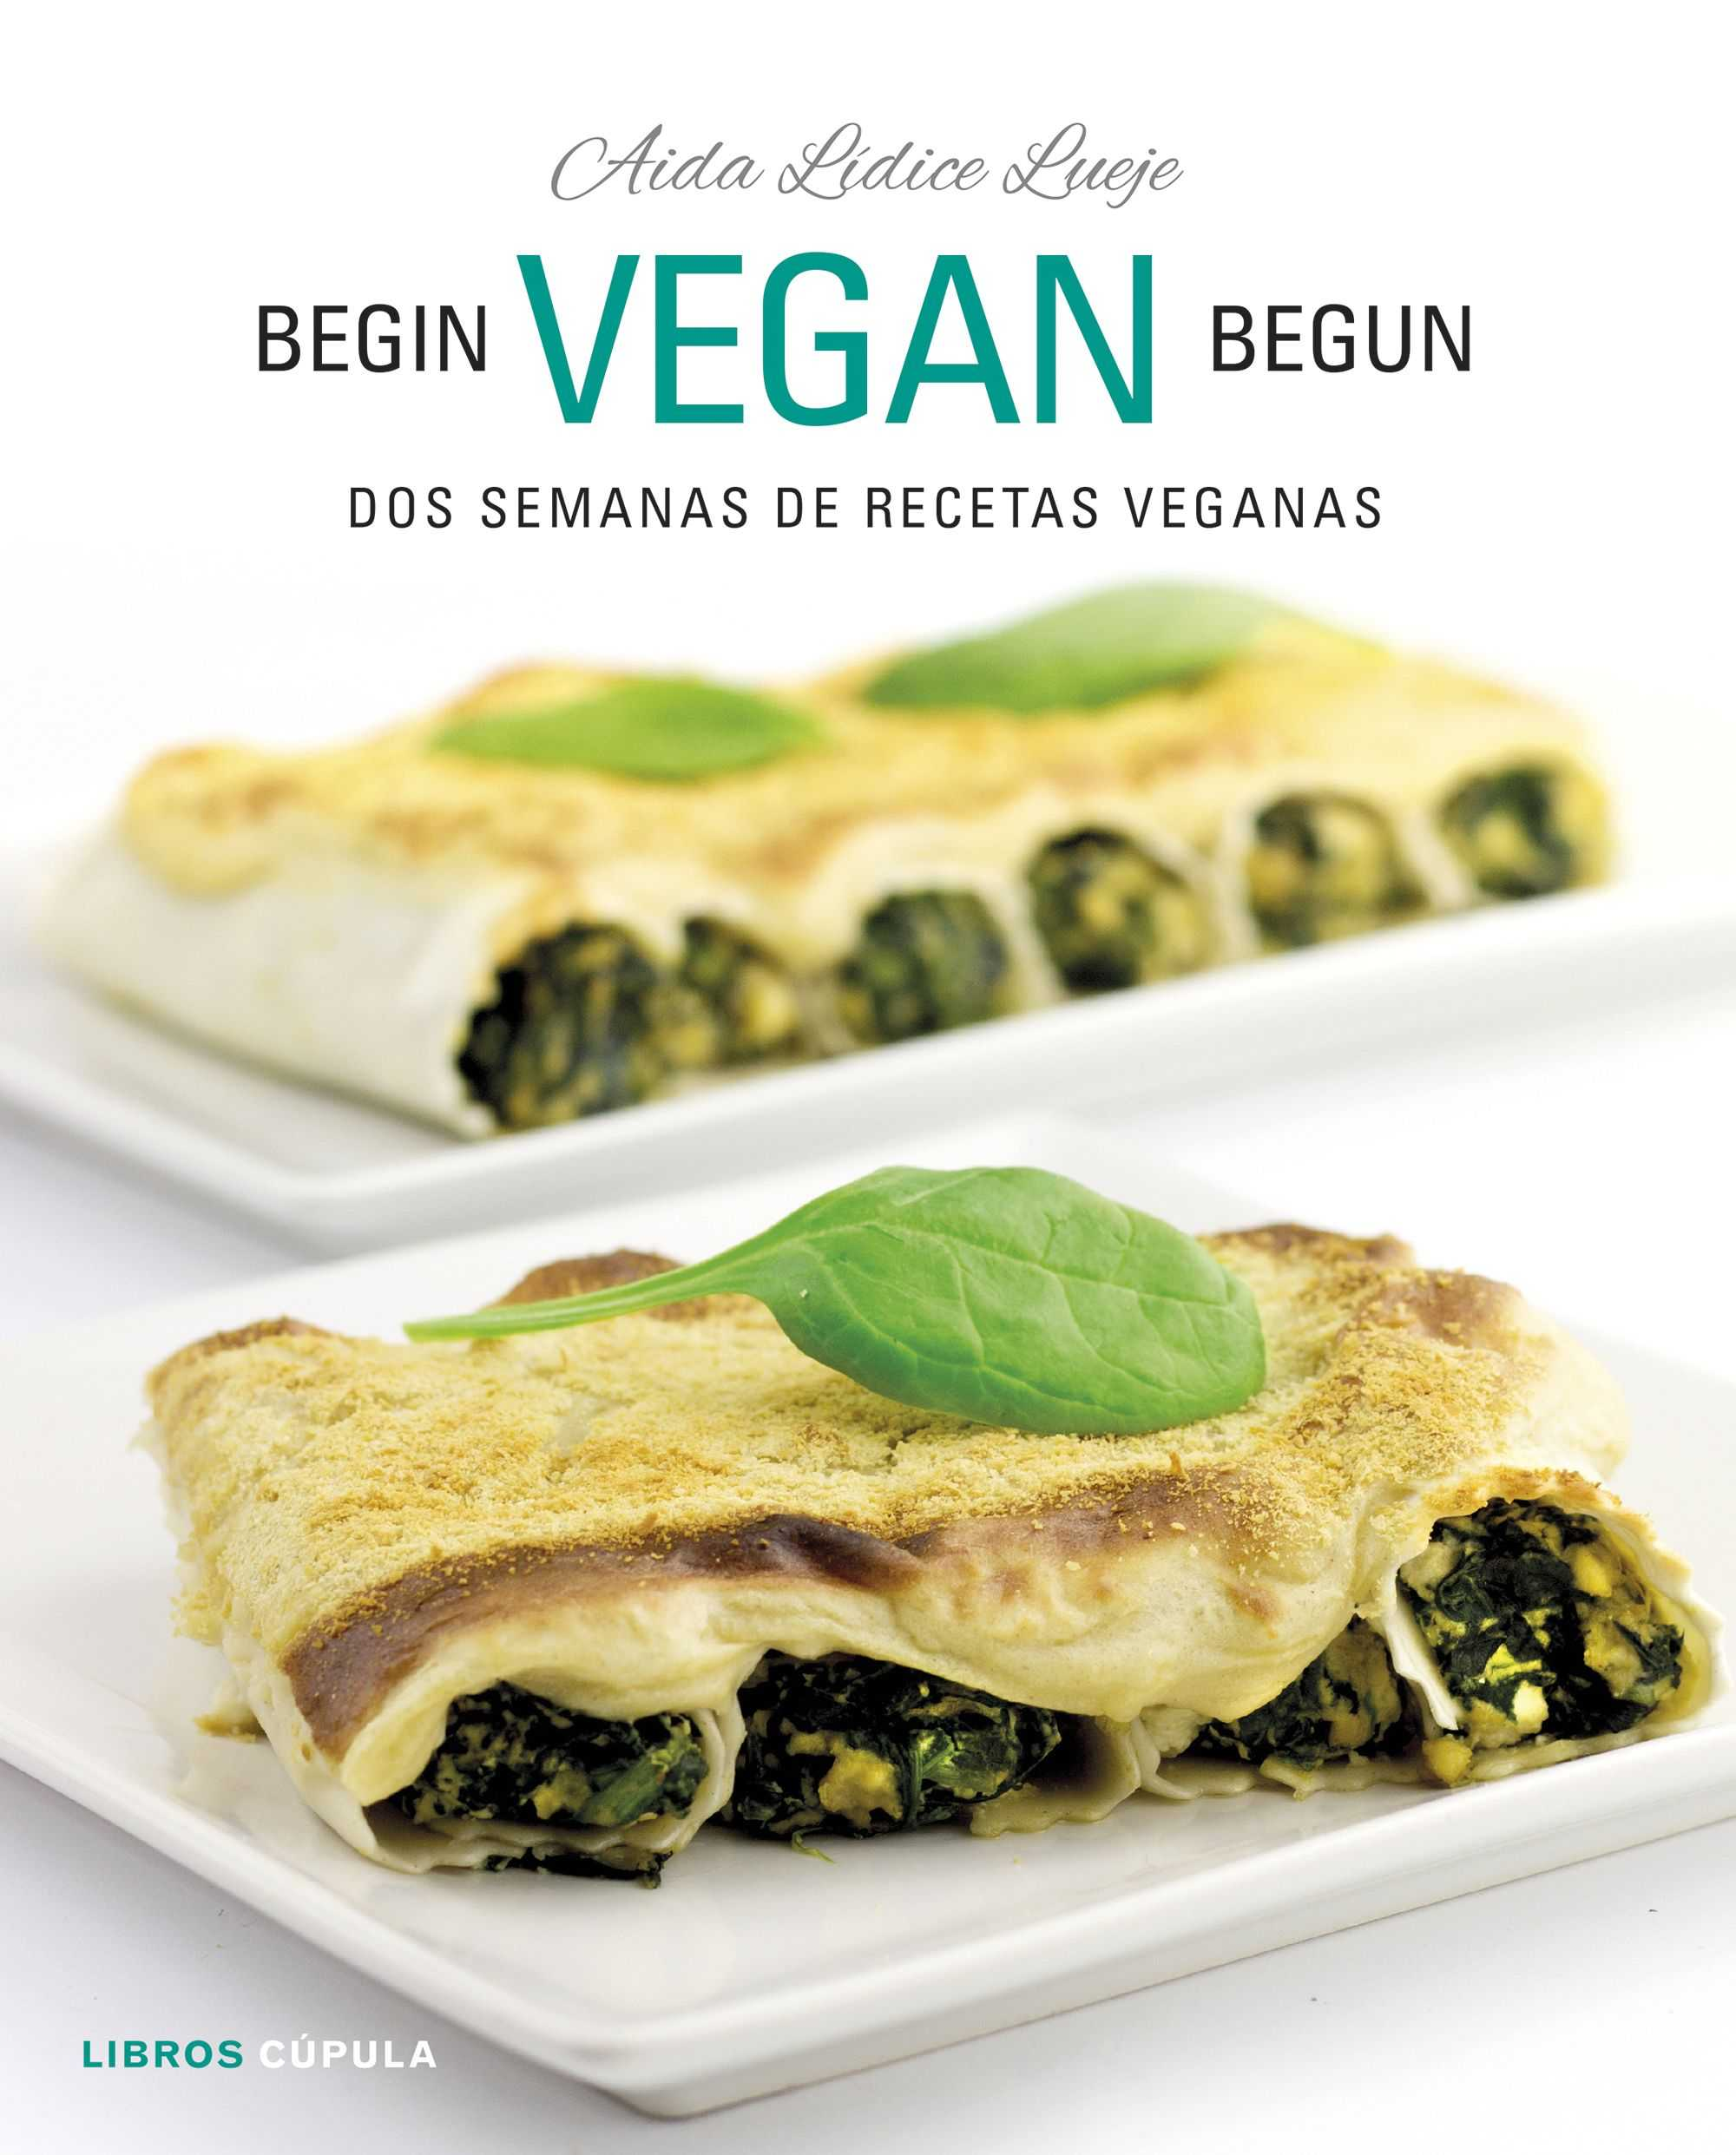 begin-vegan-begun_aida-lidice